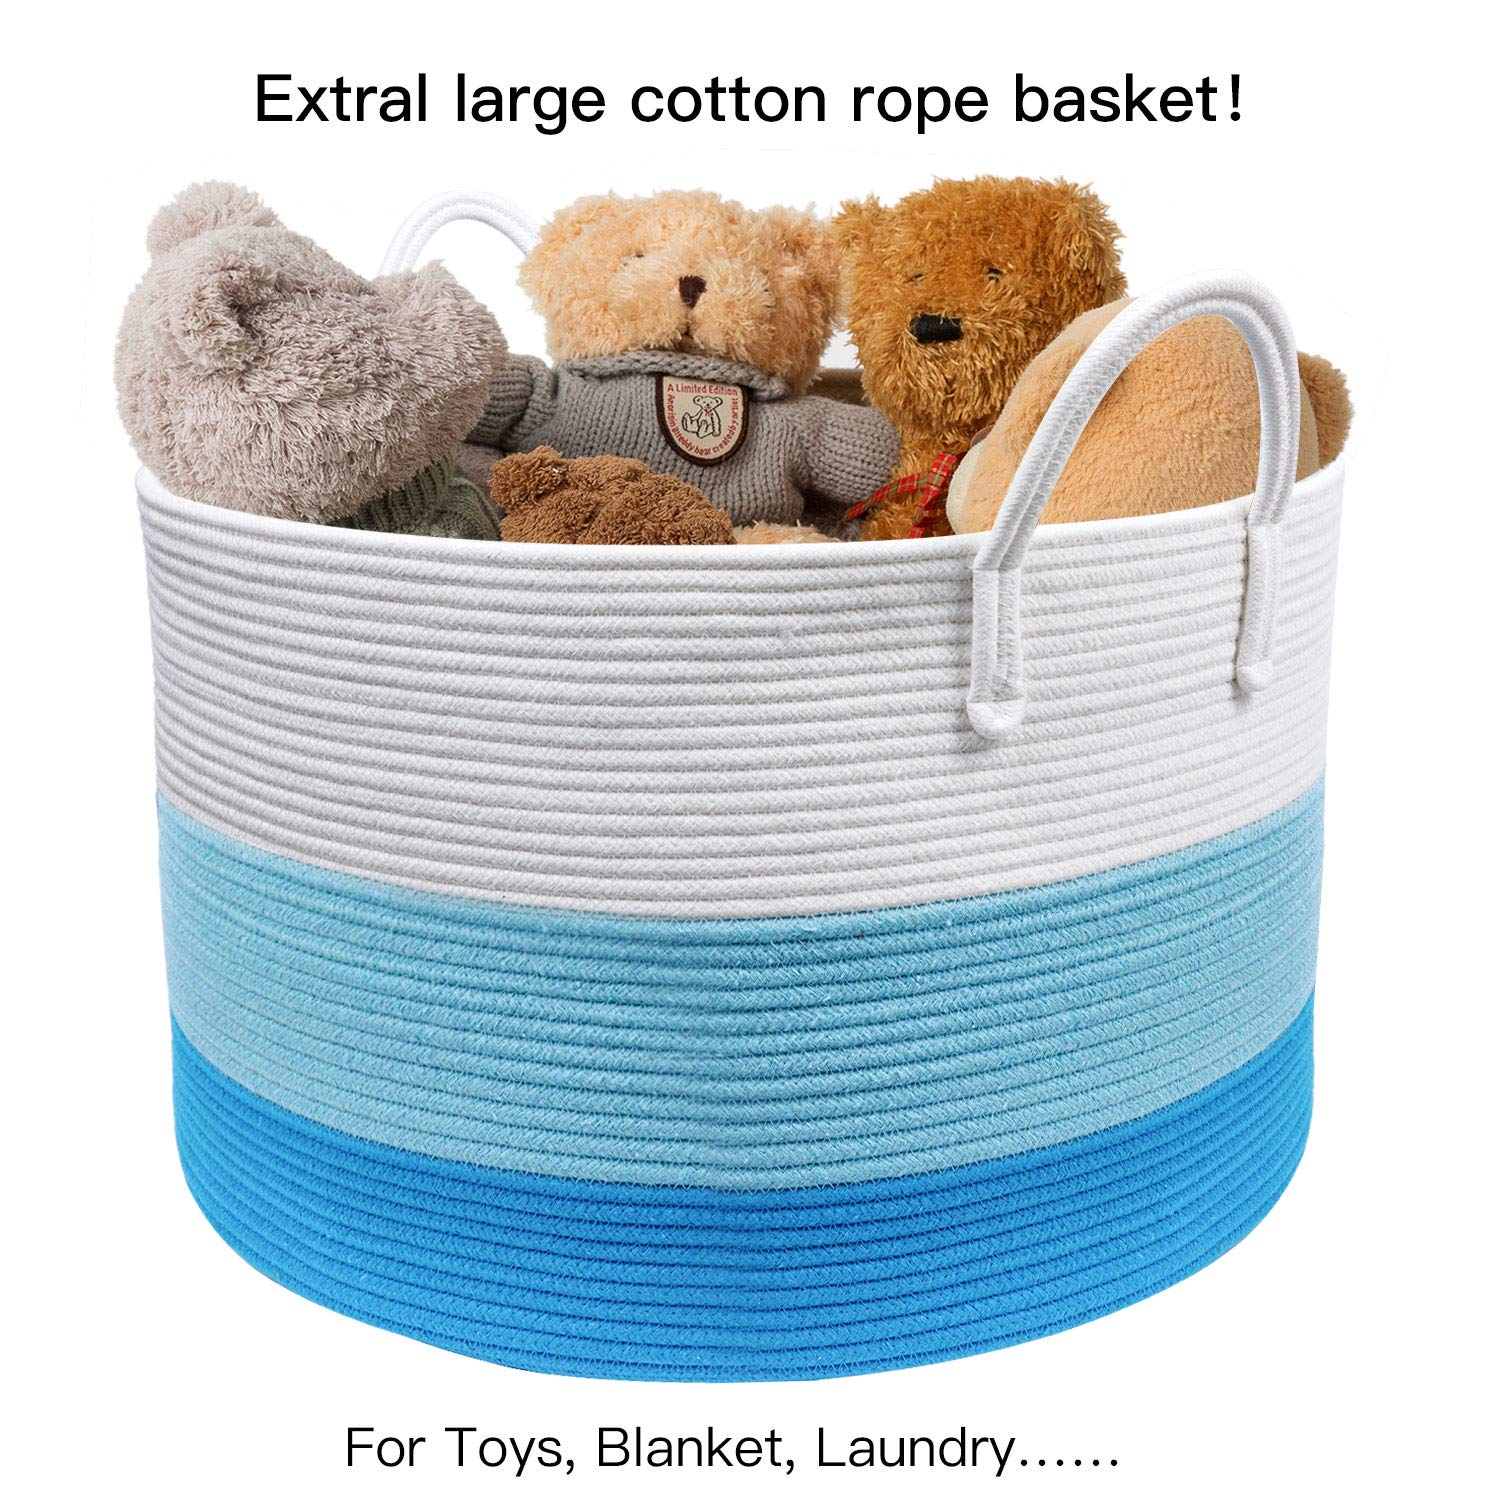 Wide 20 x 13.3 Blanket Storage Basket with Long Handles Decorative Clothes Hamper Basket Extra Large Baskets for Blankets Pillows or Laundry INDRESSME XXXLarge Pink Woven Rope Basket